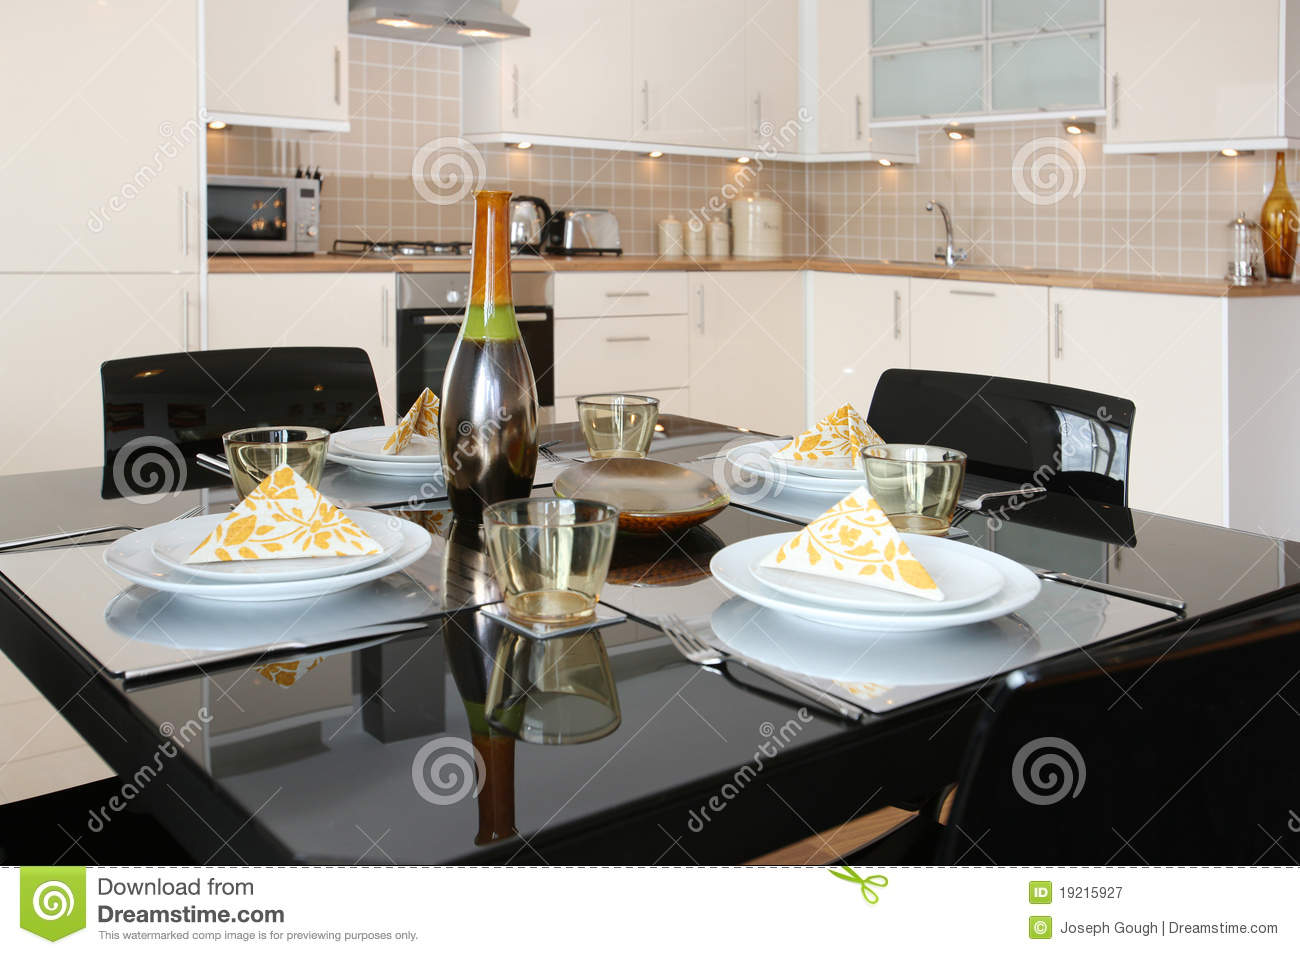 Dining Table In Modern Open Plan Apartment Royalty Free  : dining table modern open plan apartment 19215927 from www.dreamstime.com size 1300 x 955 jpeg 130kB